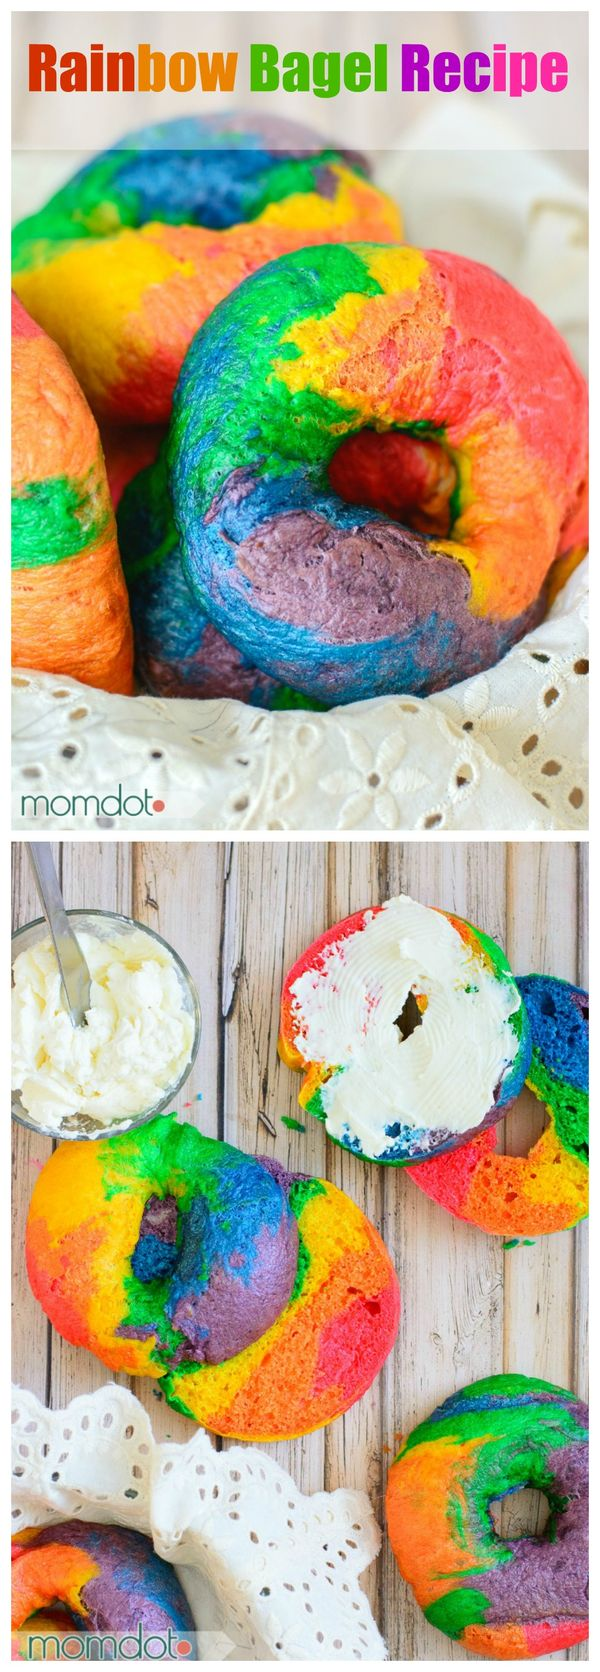 Rainbow Bagel Recipe that will blow your kids mind in the morning. Create Melted Rainbow bagels with this easy to follow recipe tutorial right from your own kitchen .